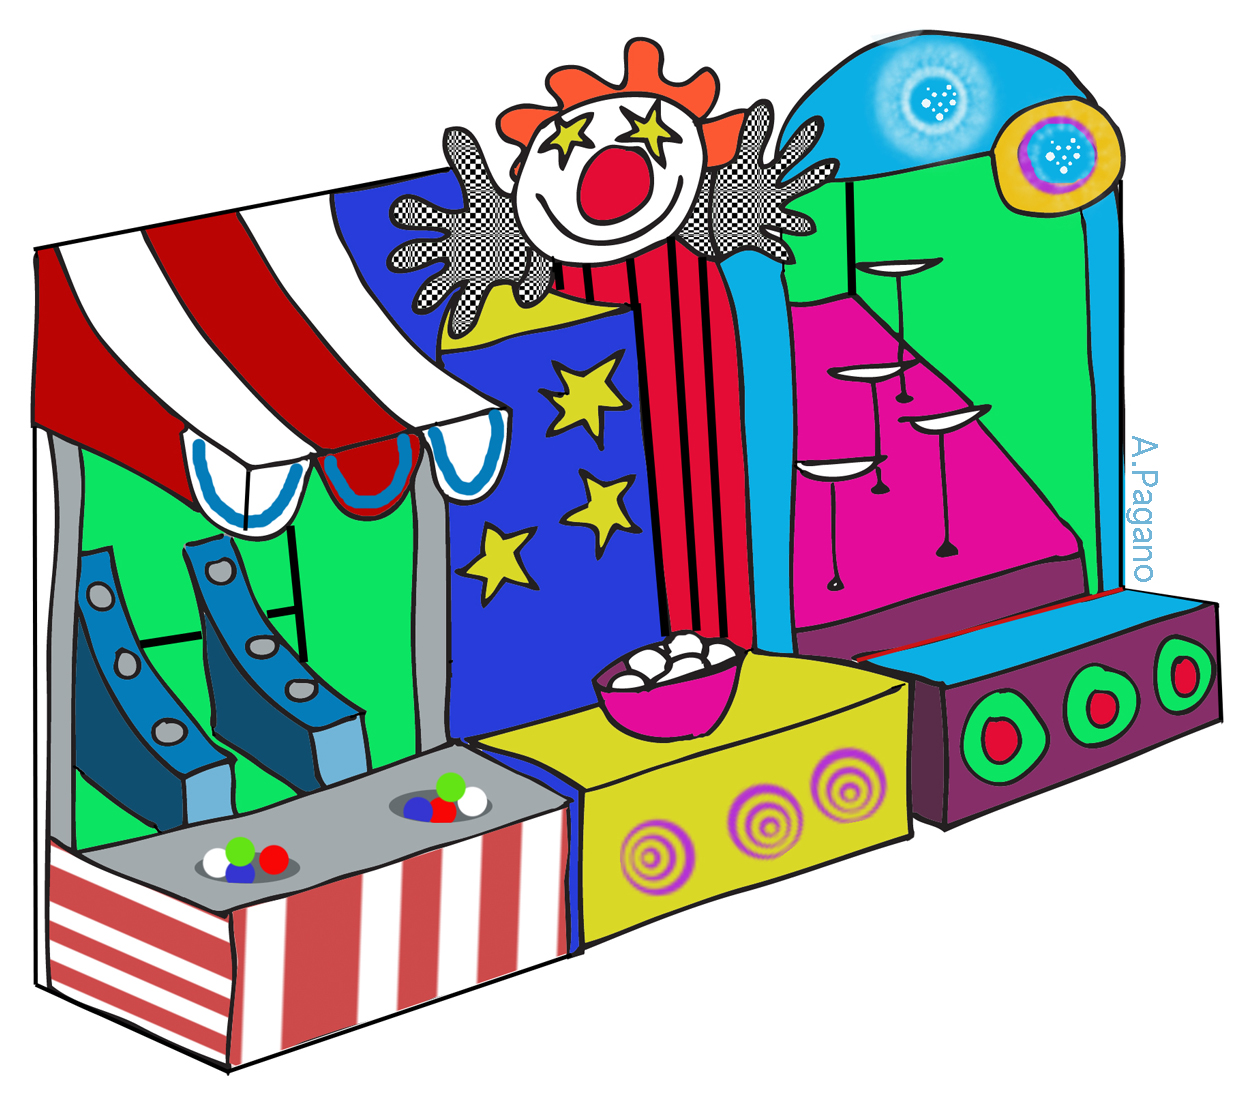 game clipart carnival game. c - Carnival Games Clip Art